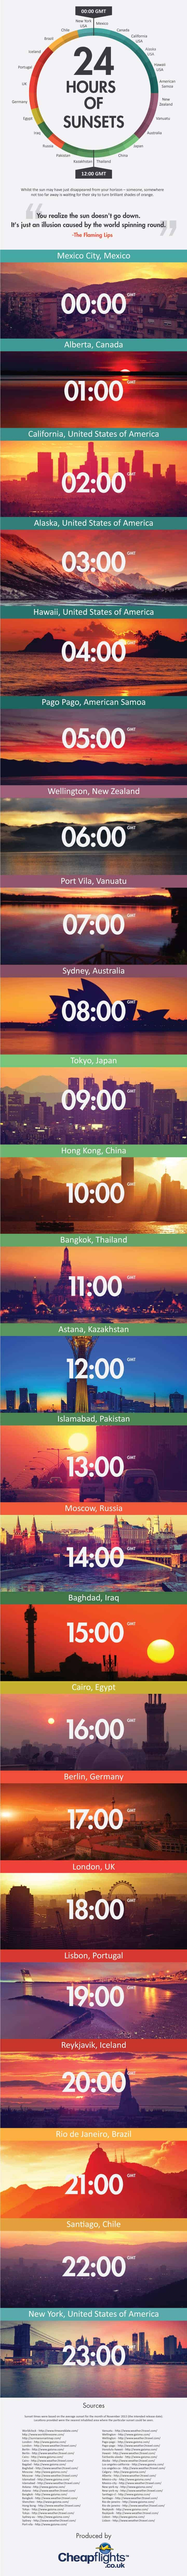 24 Hours of Sunsets [infographic]